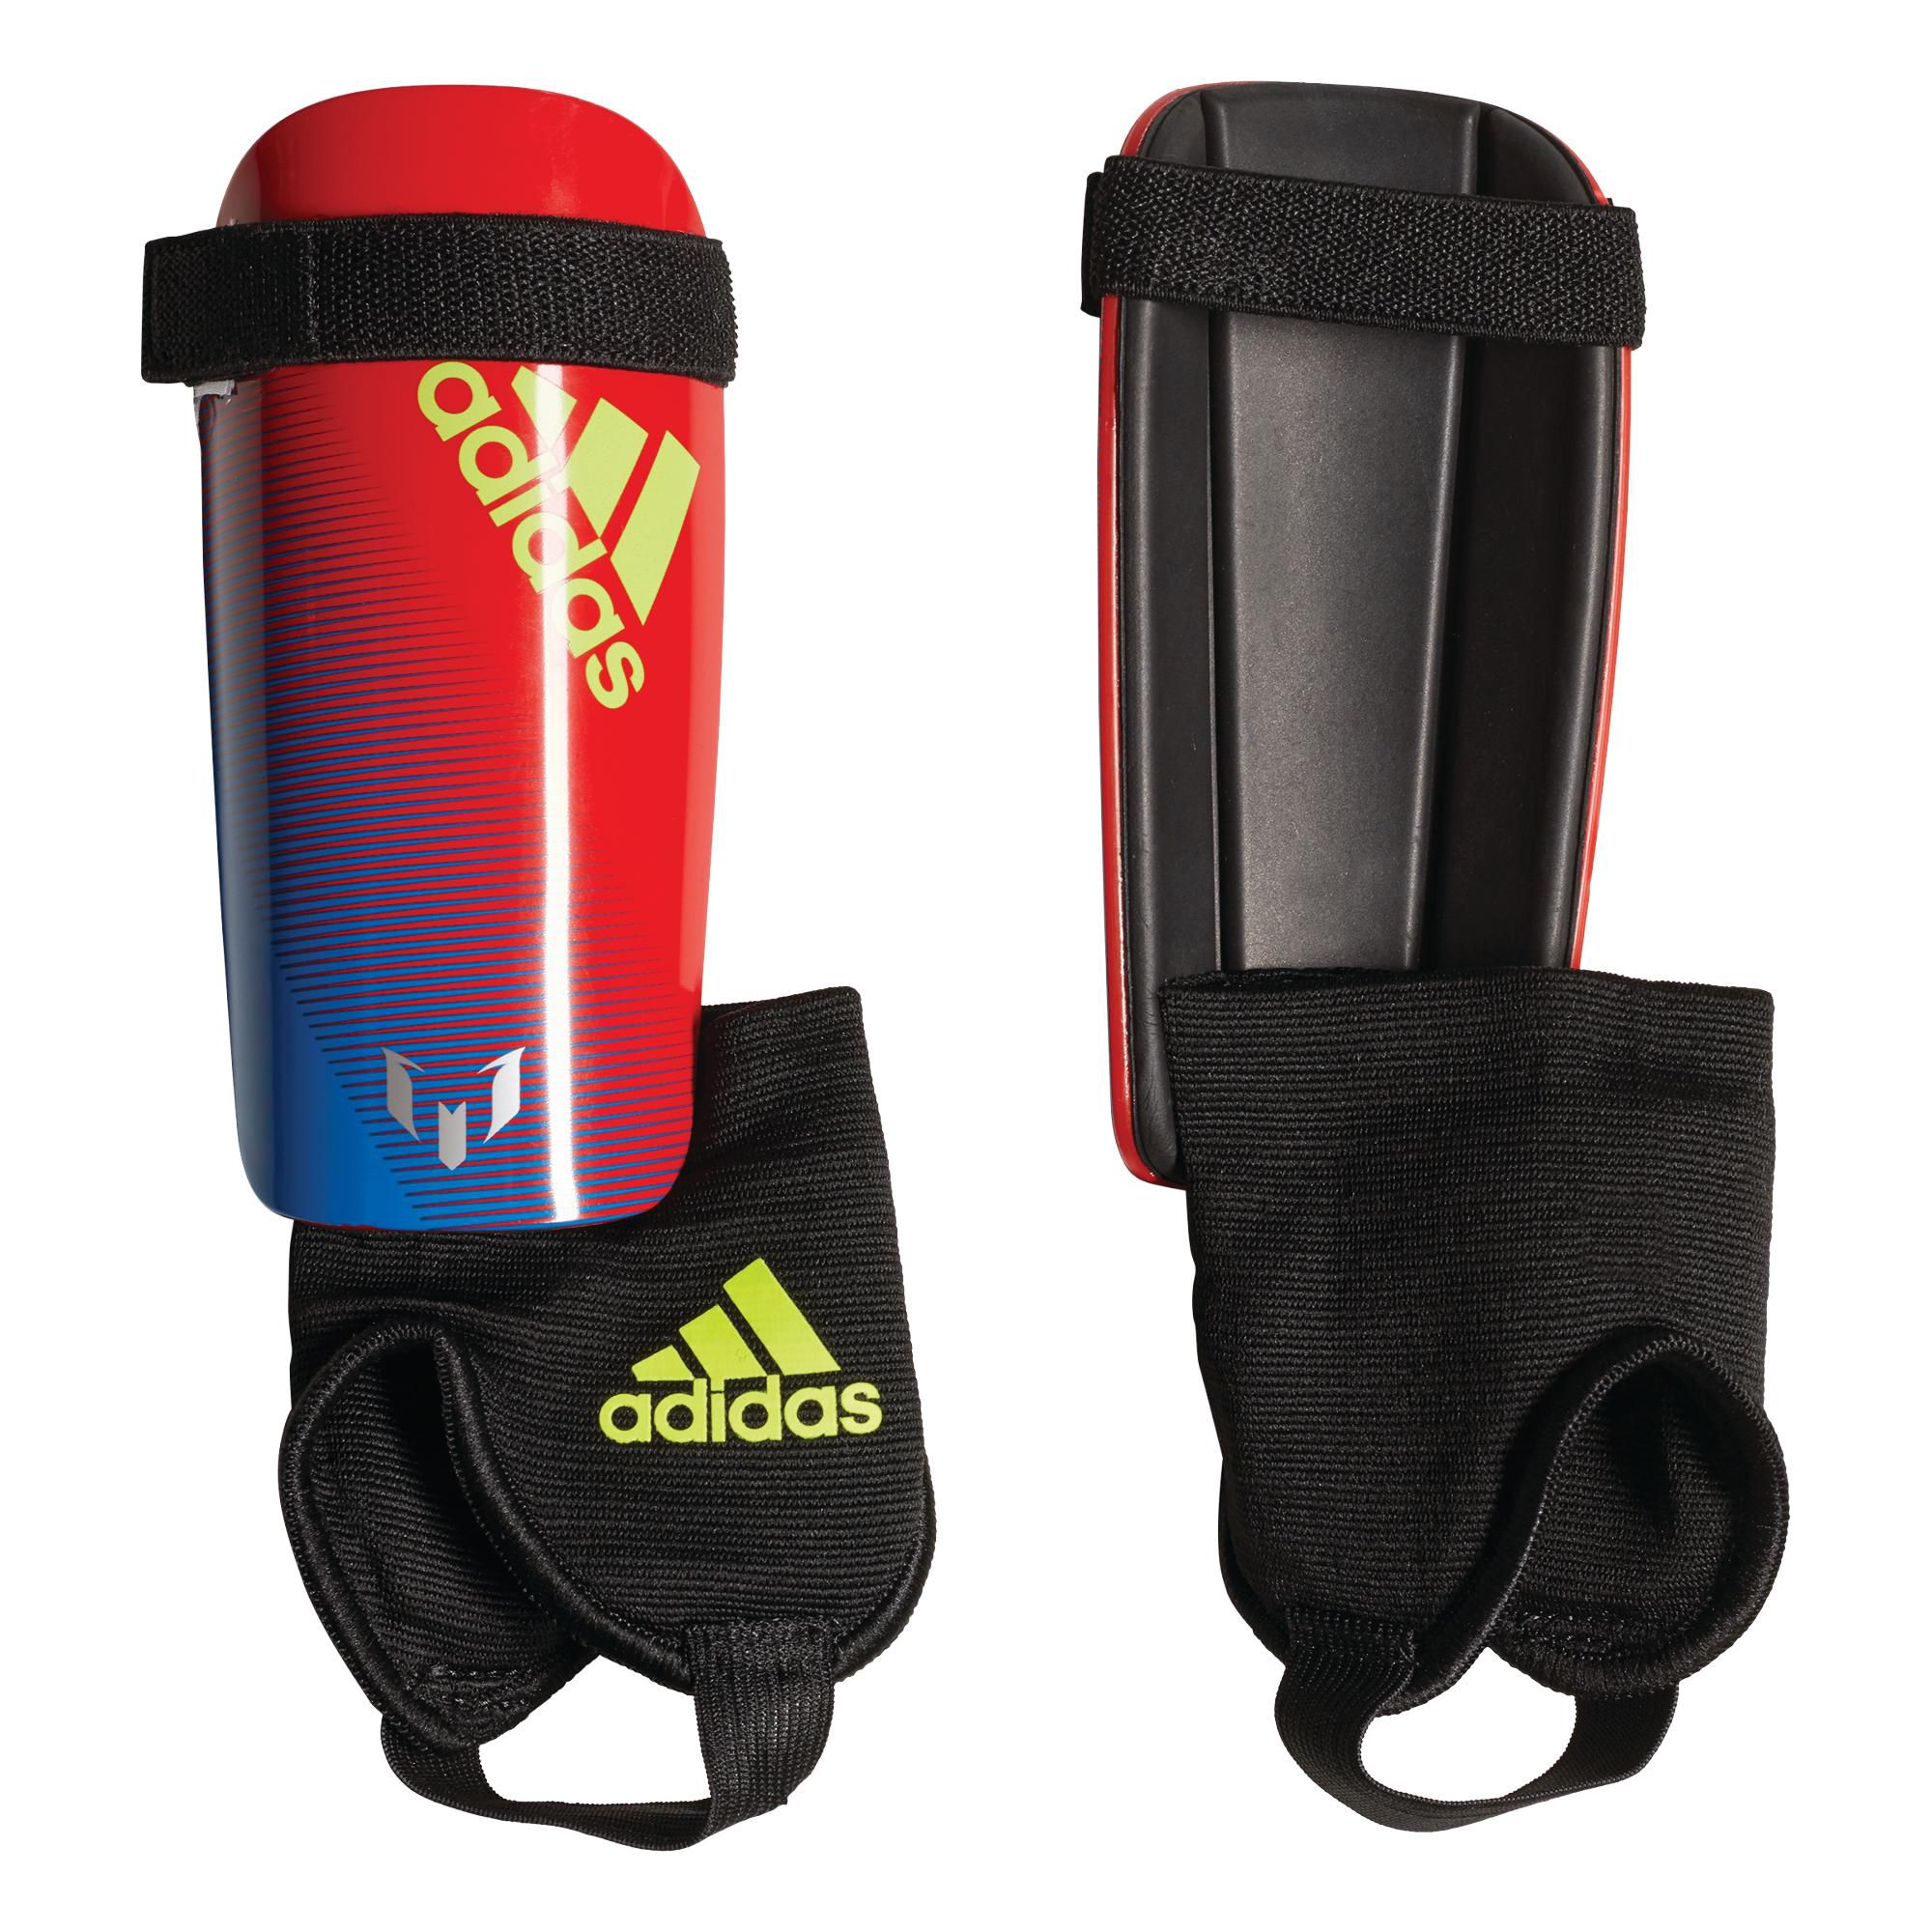 efa5a355f adidas Youth Messi 10 Soccer Shin Guards